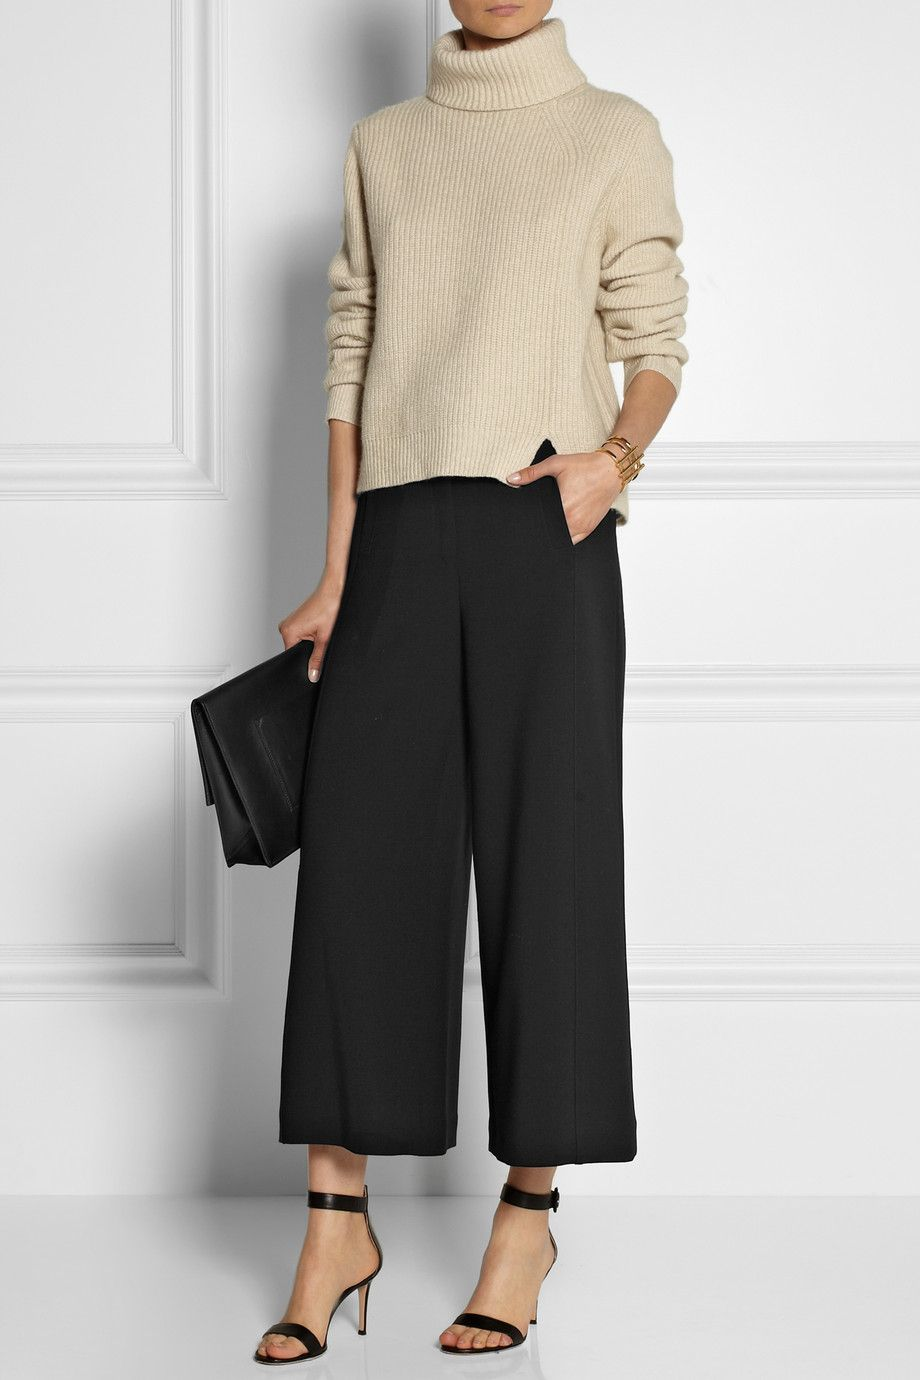 Proenza Schouler Cropped Stretch Wool Wide Leg Pants Sweater And Tendencies Shirt Anika Asymetric Putih S Bag